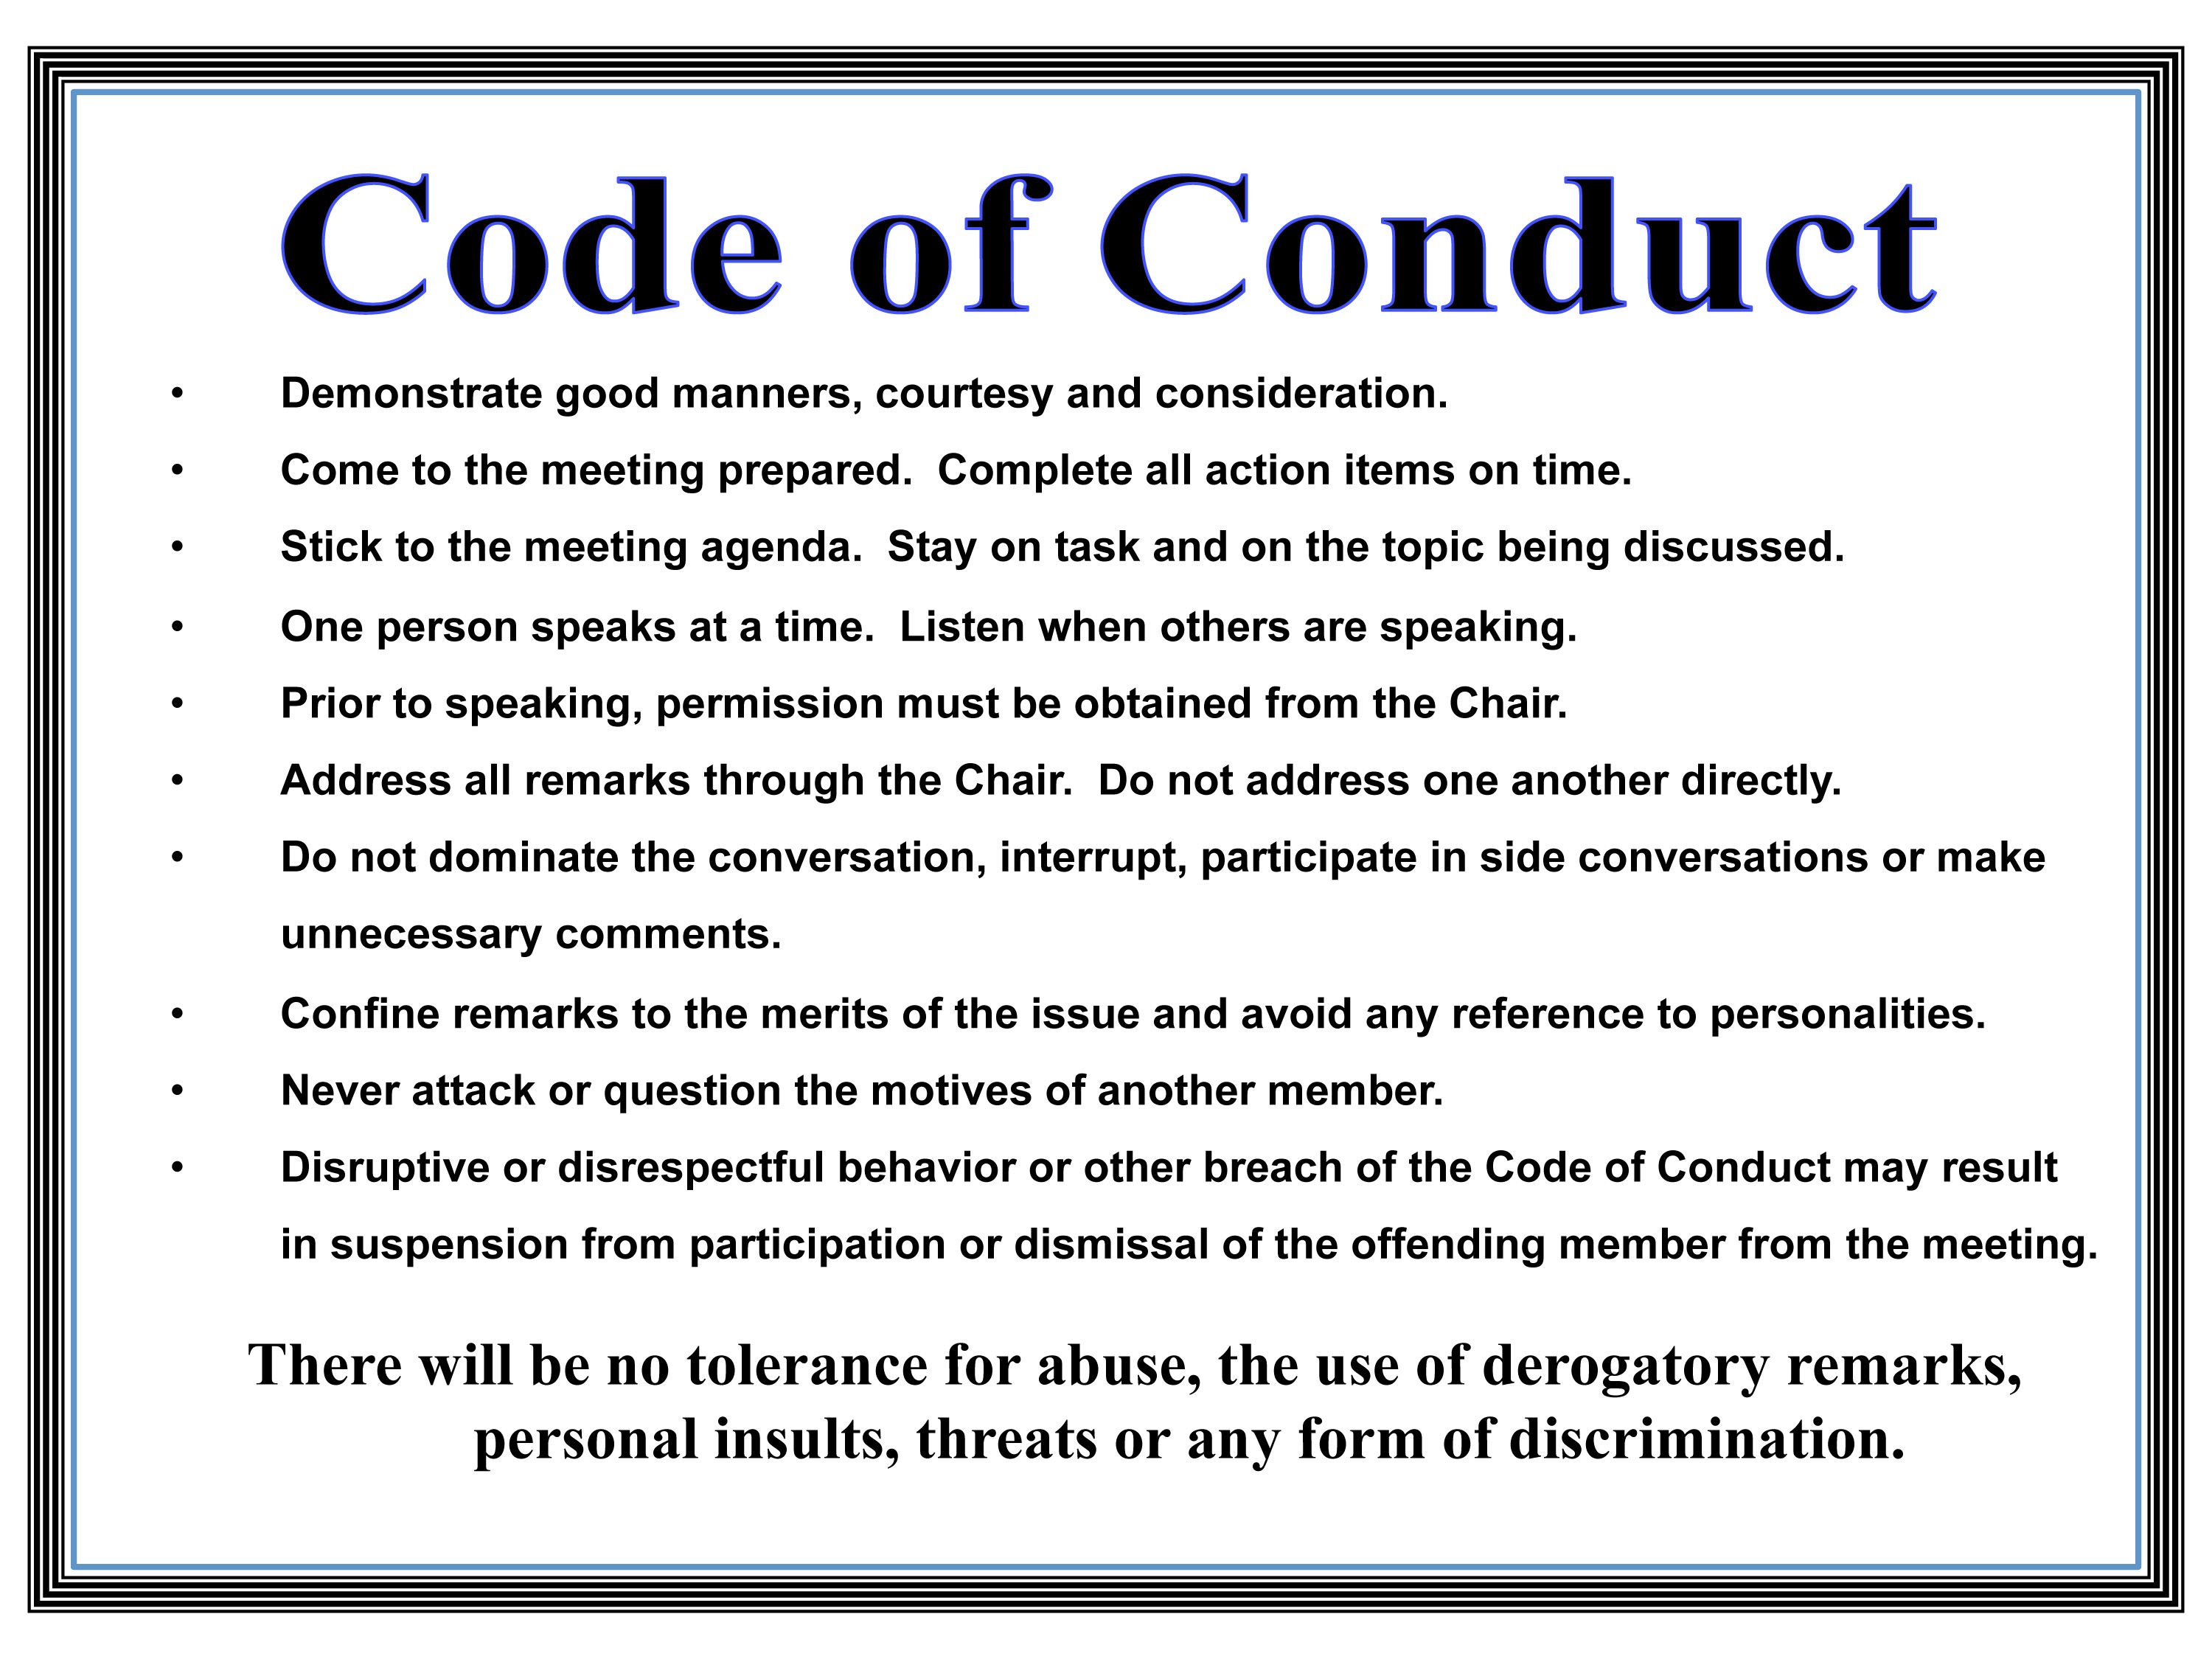 an overview of the ethics and business conduct program in the united states This guide provides a brief overview of the ethics rules and standards of ethical conduct that all employees should know and follow discuss any question not answered.